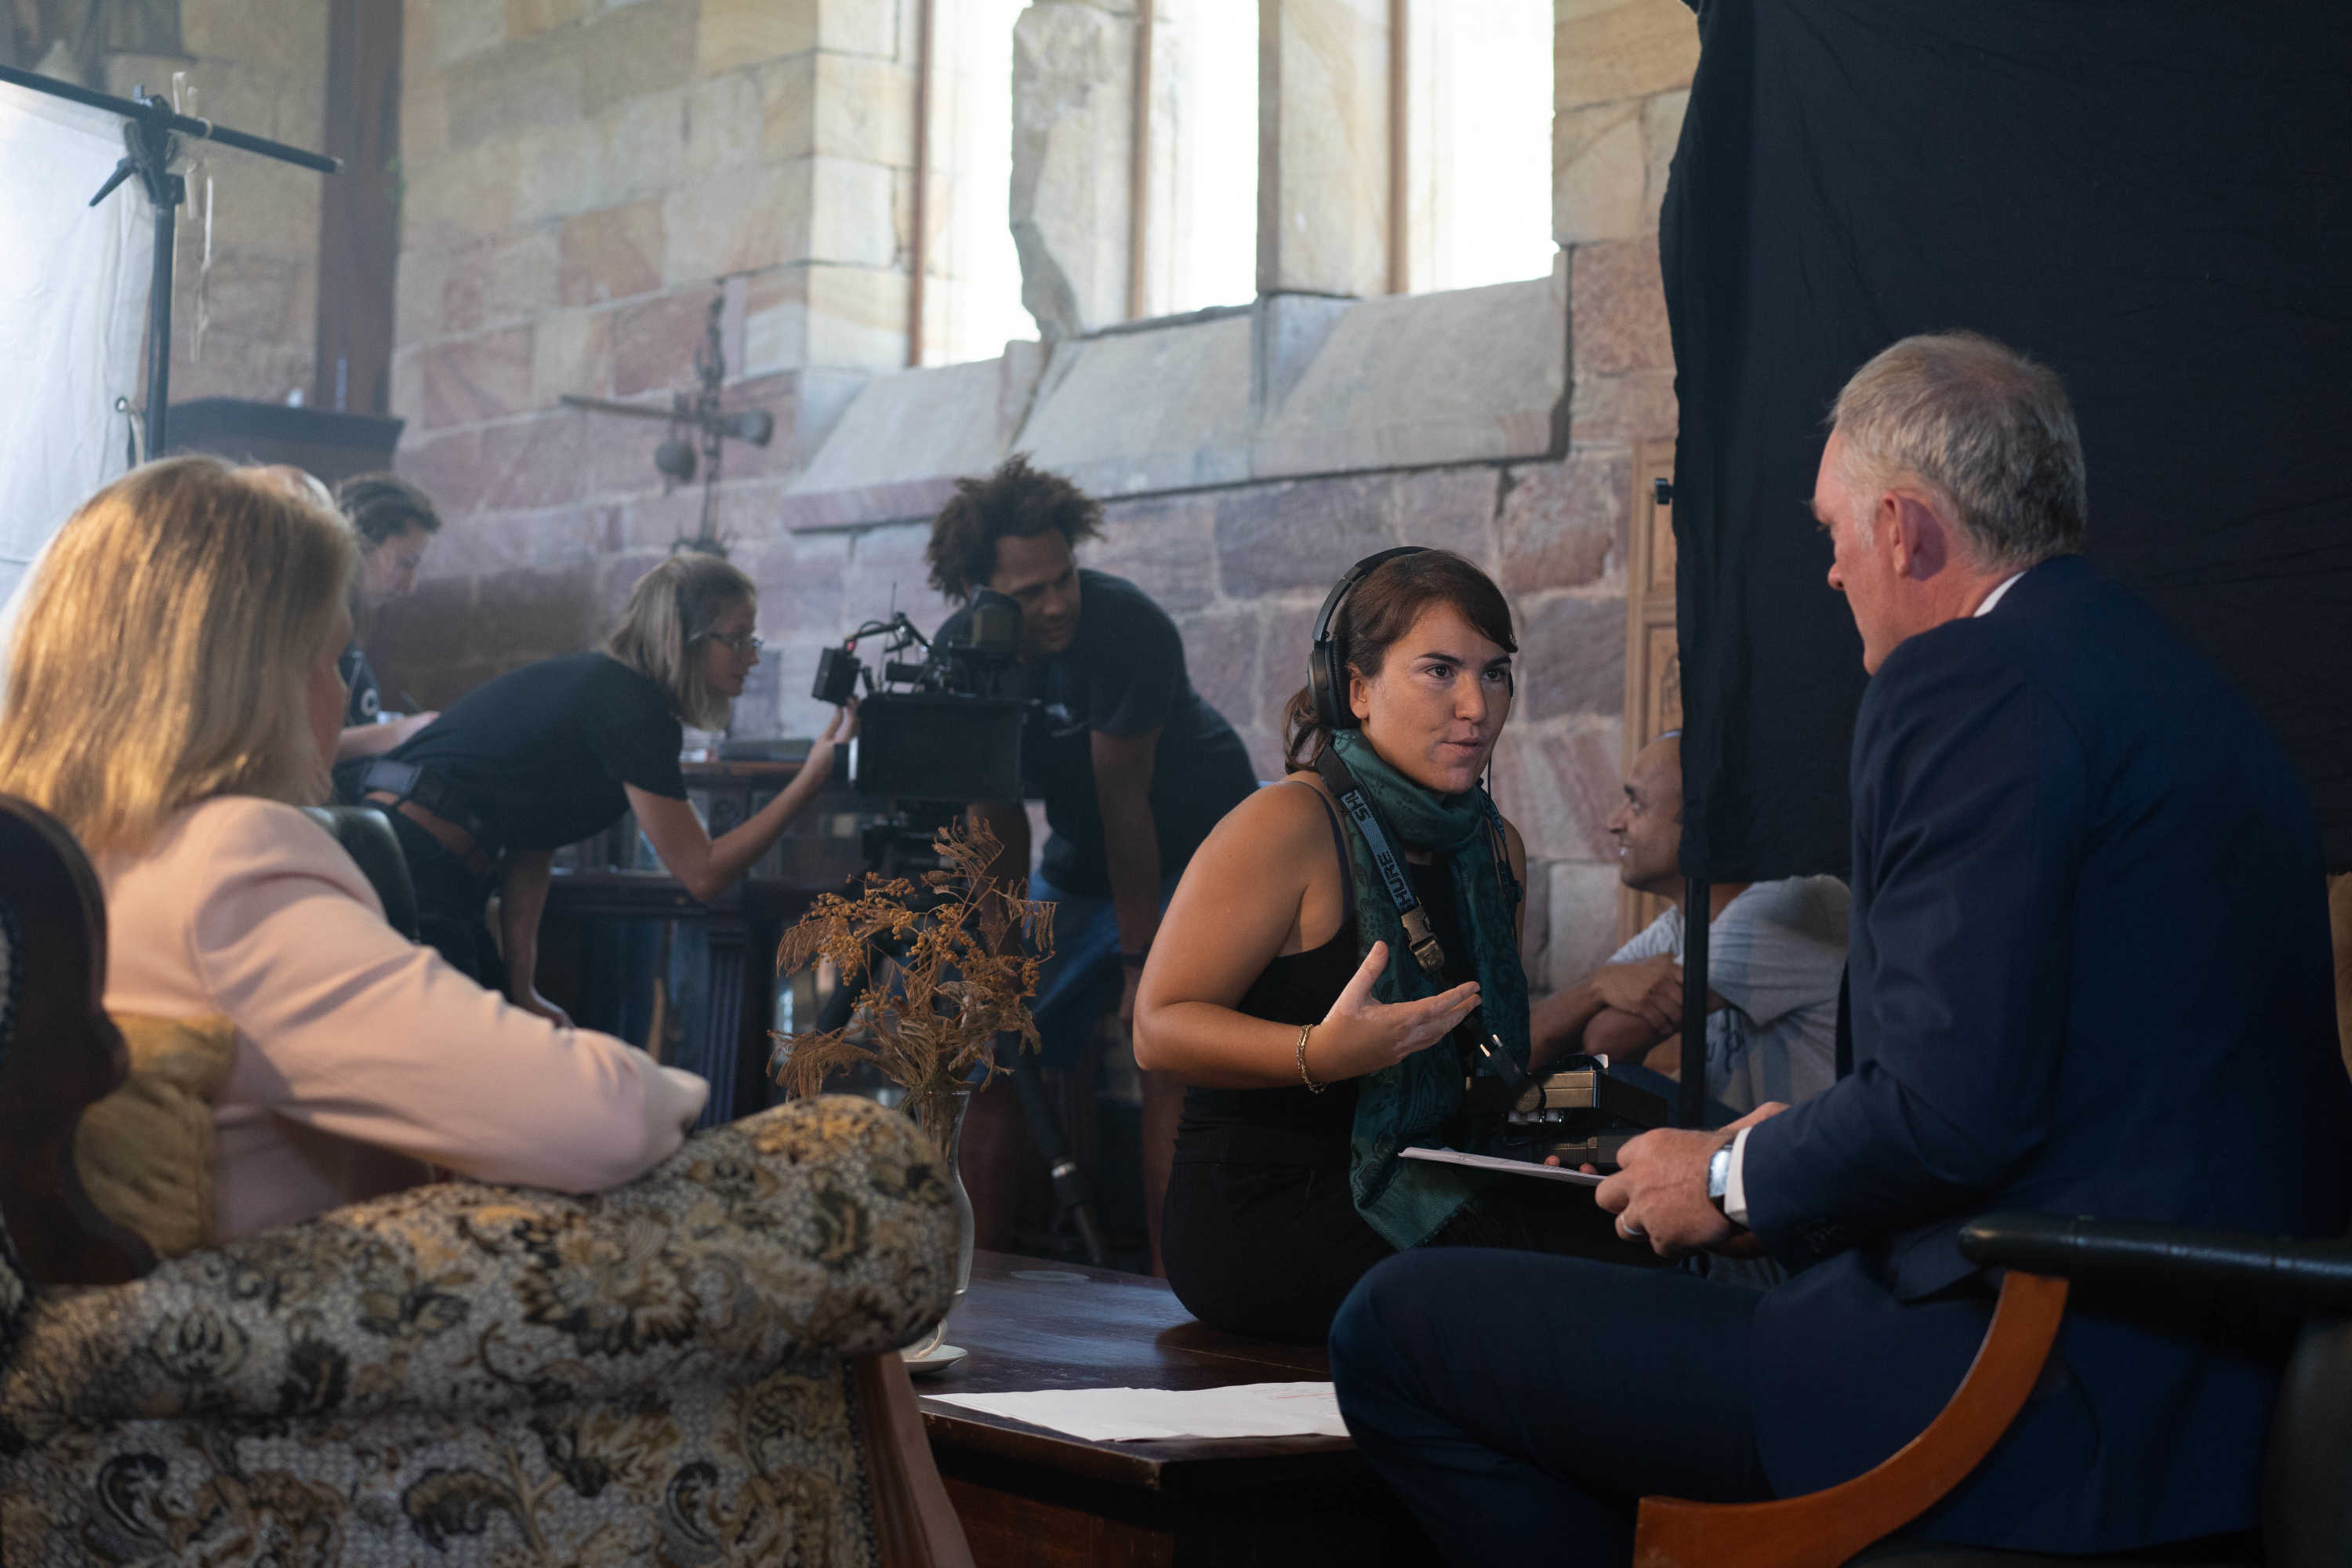 Alessia Francischiello on set discussing with actors